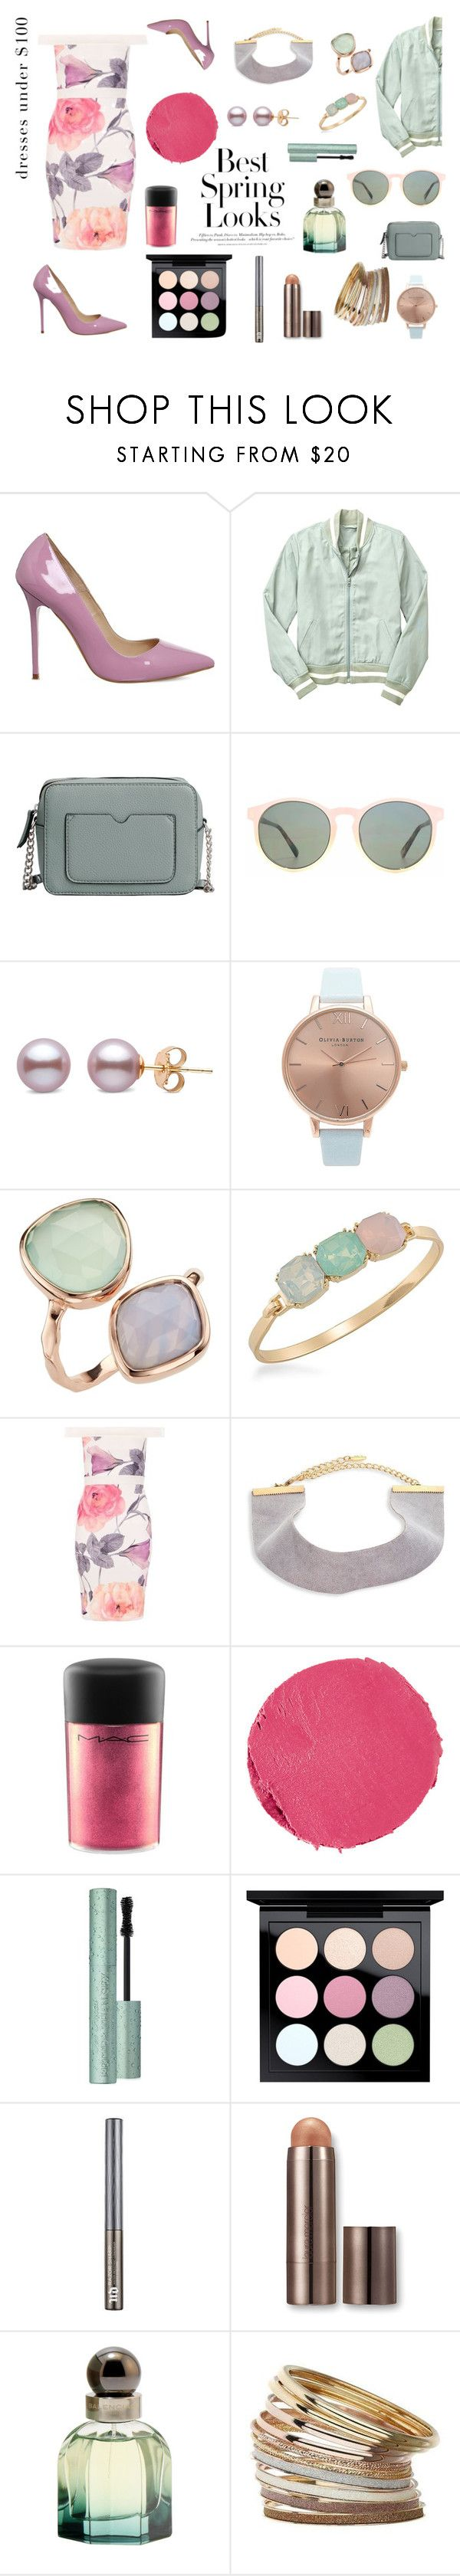 """Untitled... Look #94"" by alexandriadelamode ❤ liked on Polyvore featuring Office, Gap, MANGO, HOOK LDN, Topshop, H&M, Carolee, Dorothy Perkins, Ettika and MAC Cosmetics"